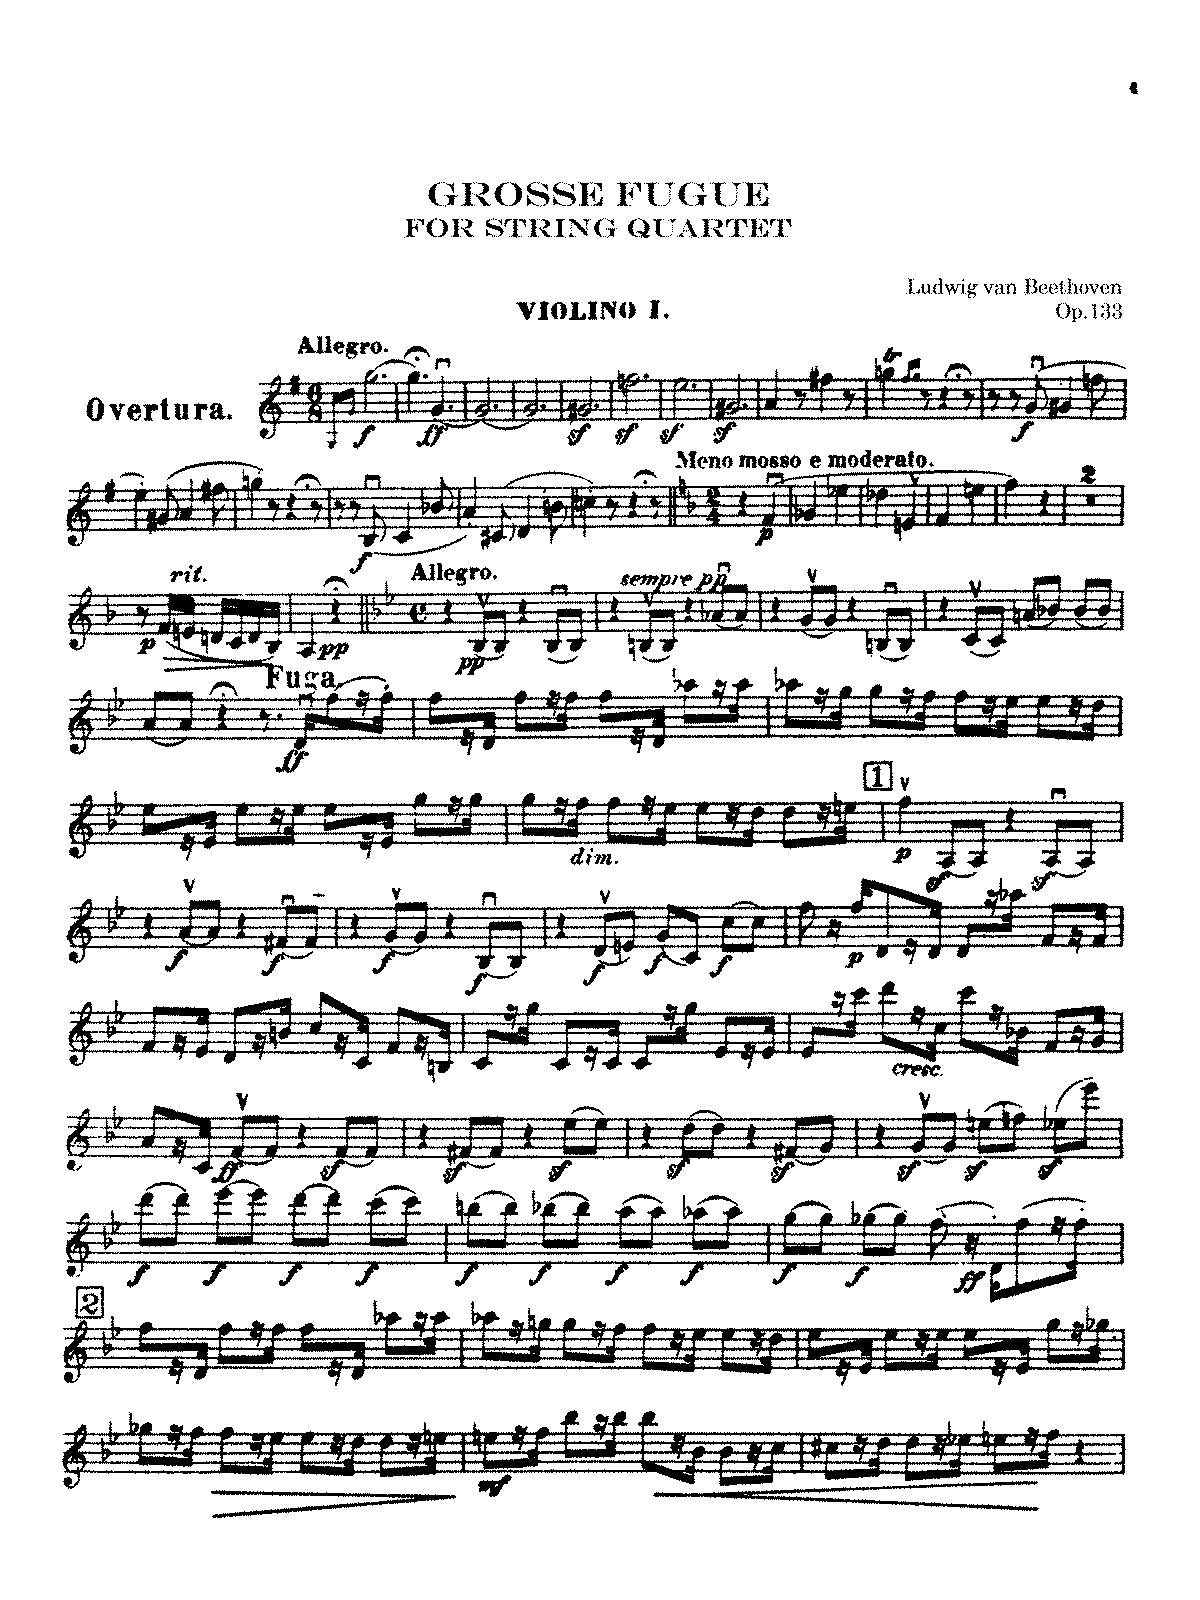 PMLP04536-Beethoven Grosse Fugue V1.pdf